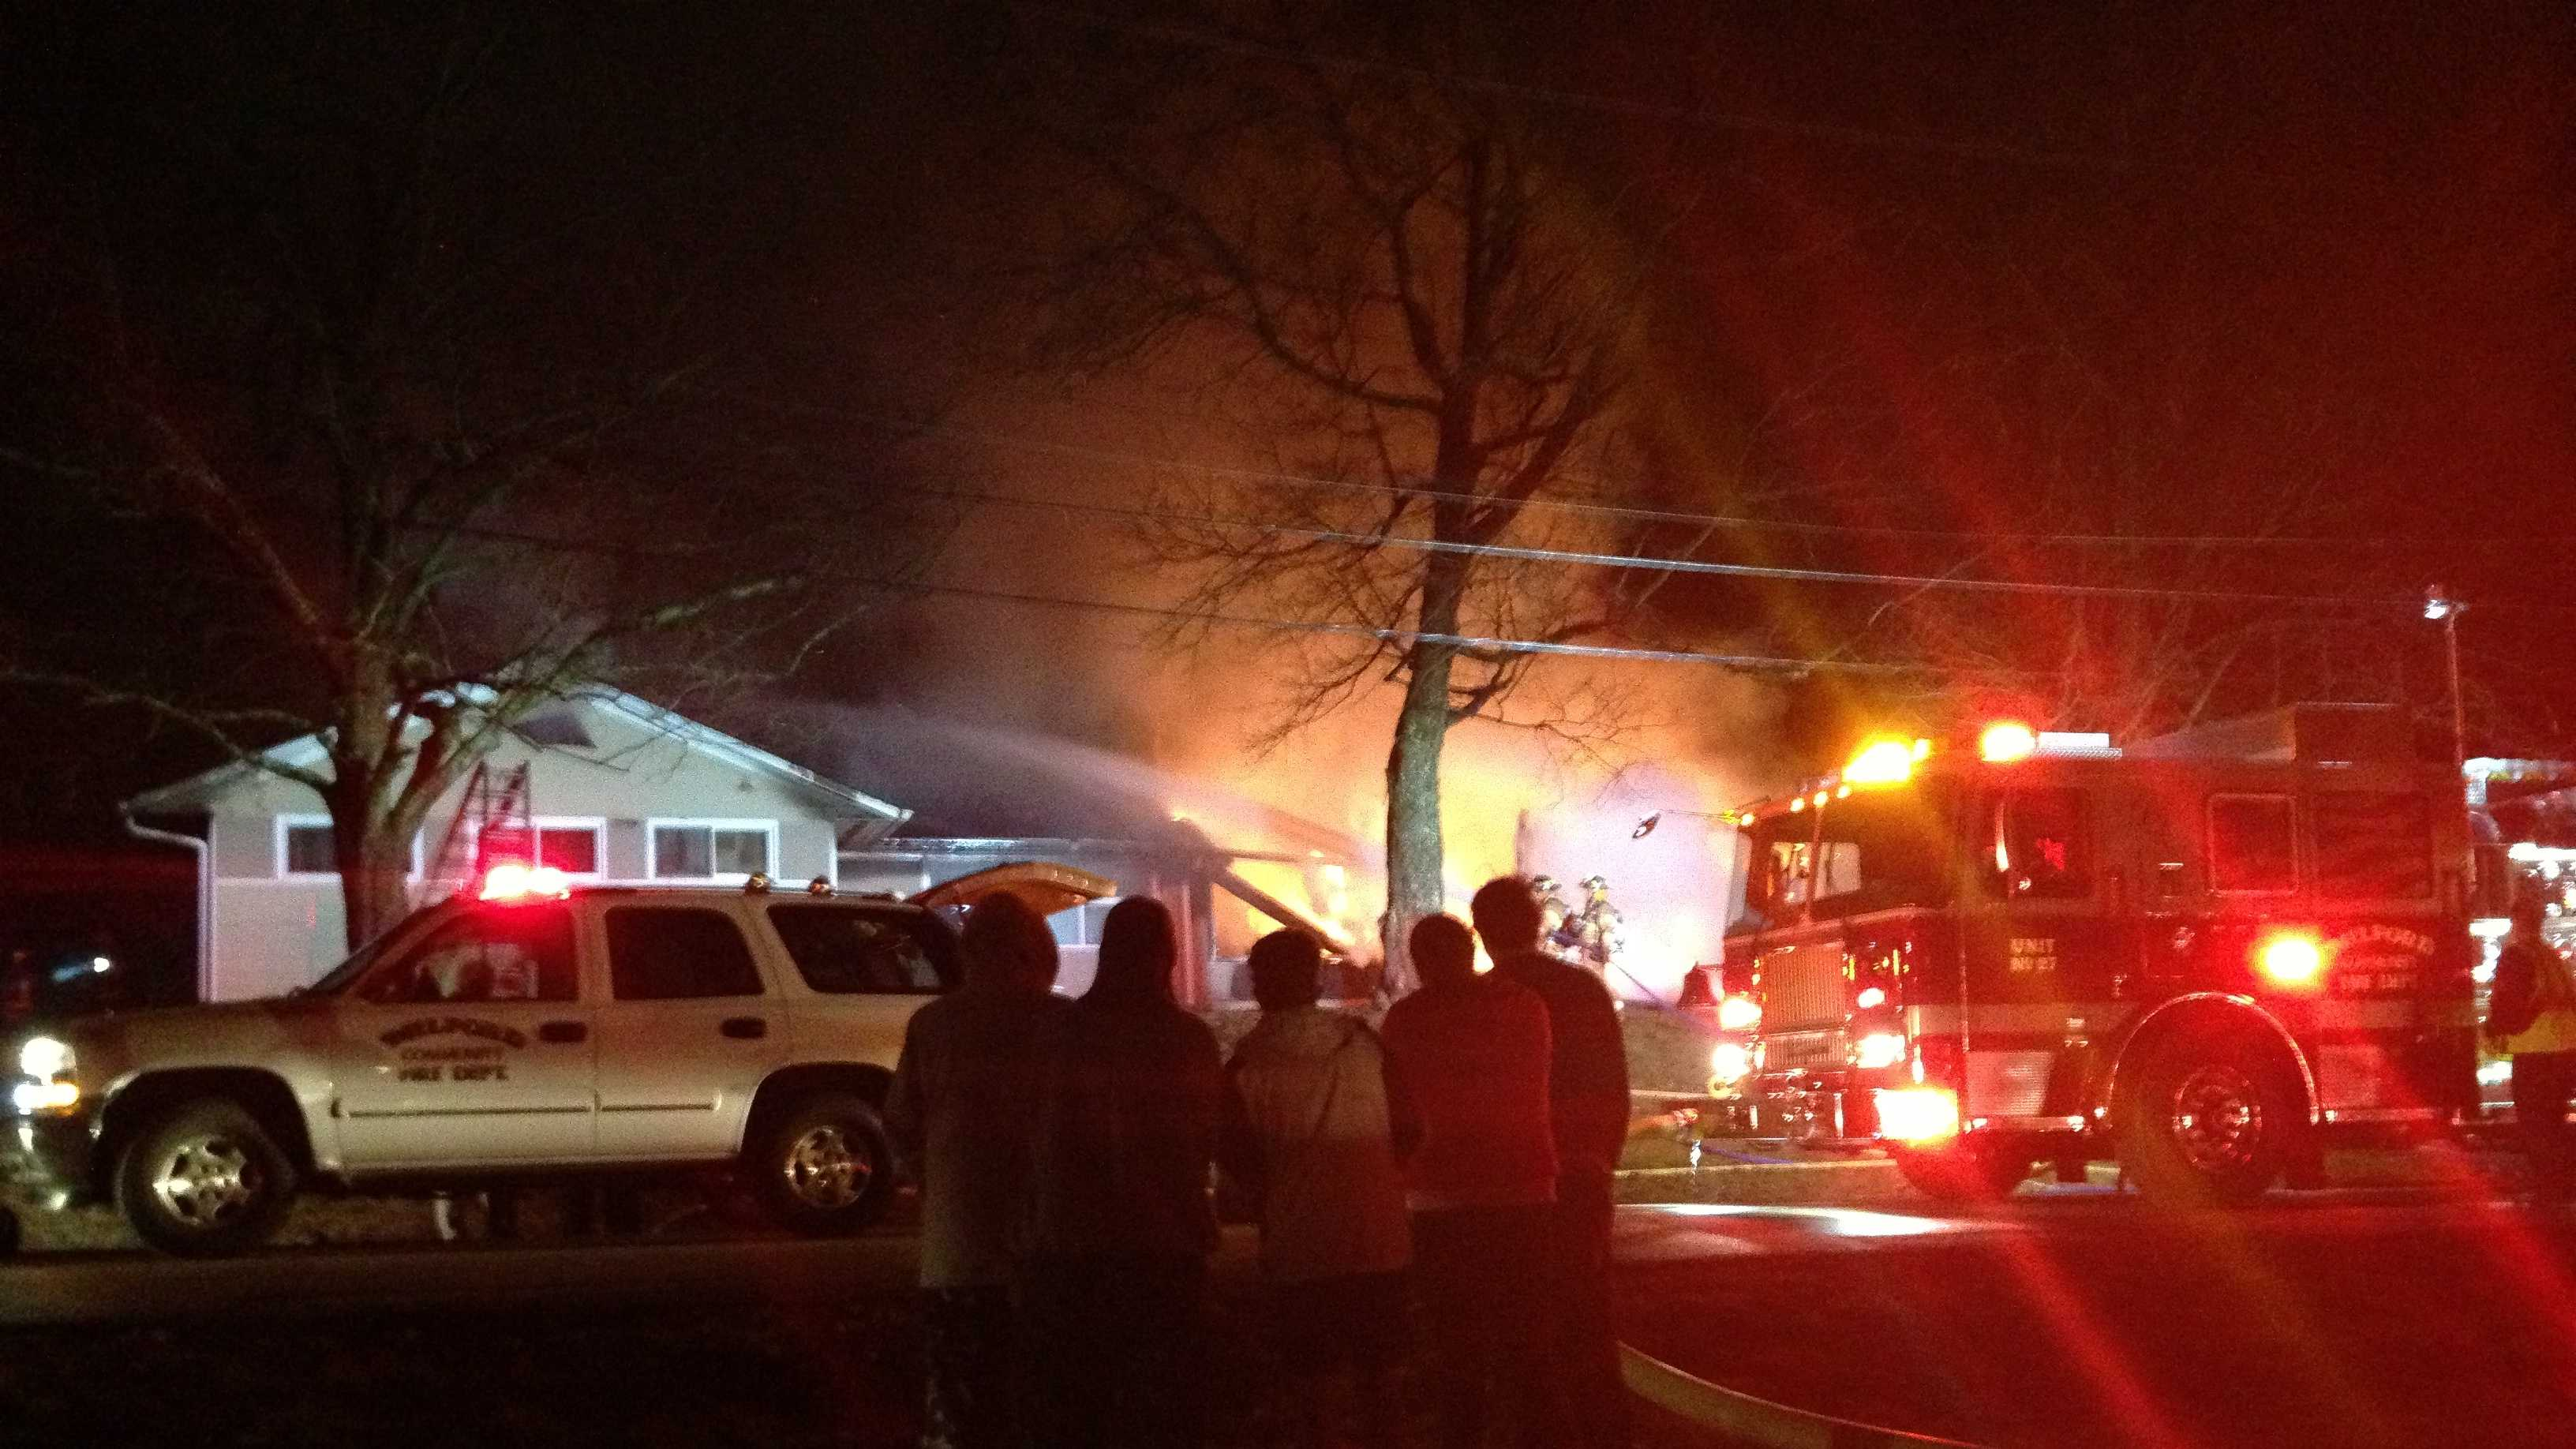 022713 Milford Fire Pic